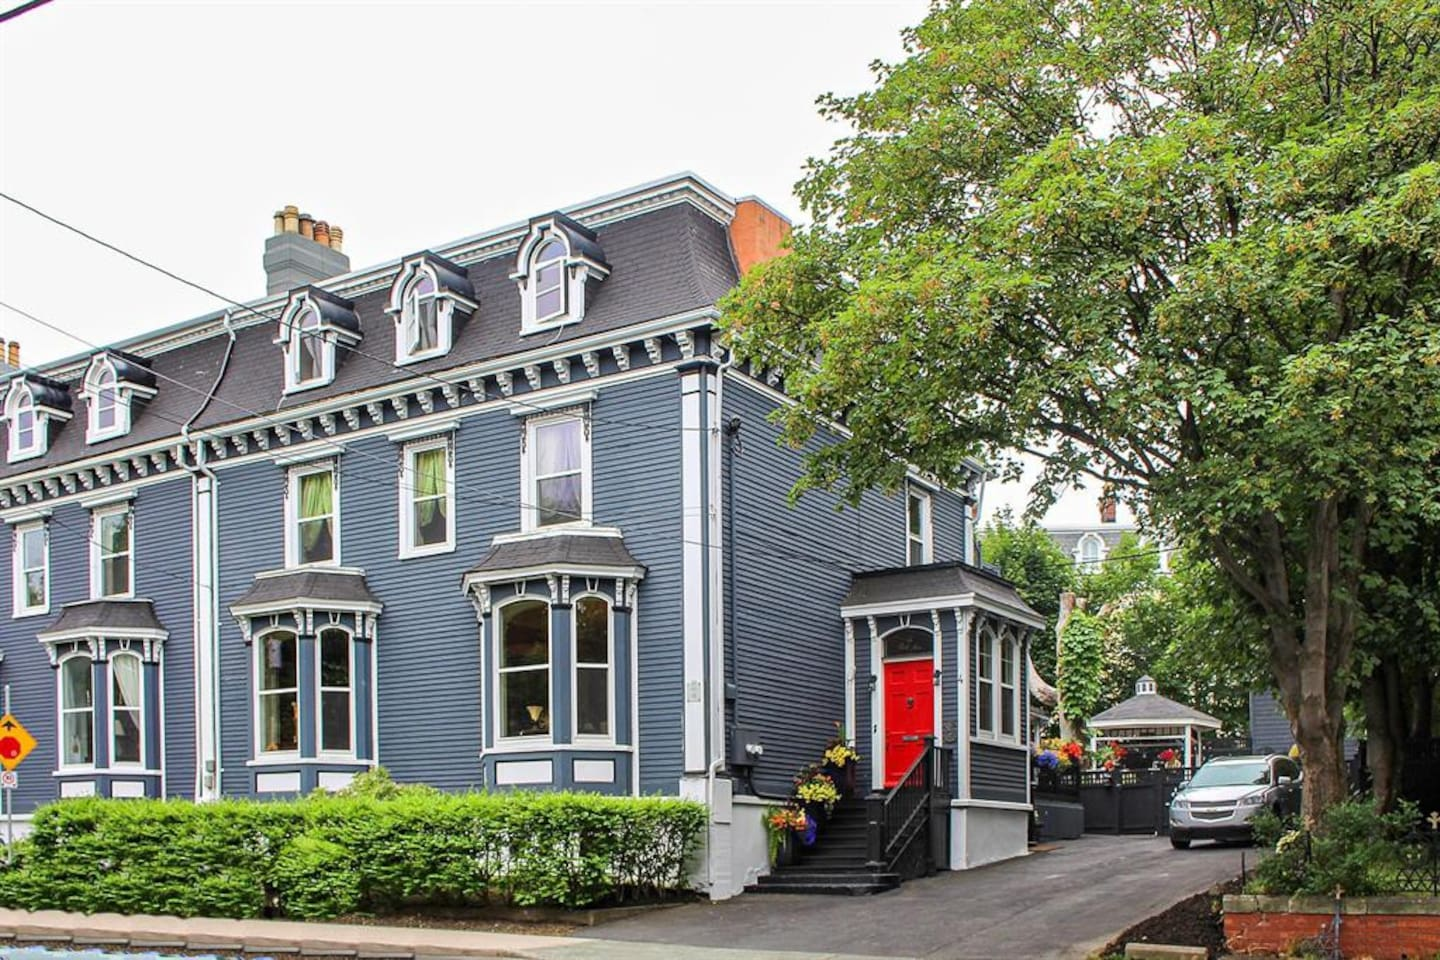 Park Place Apartment - A Gorgeous 2B Flat in 150 year old downtown Estate home; AMAZING LOCATION across from Bannerman Park; steps to the heart of Downtown but also a short walk to the beautiful Rennie's Mill River park.